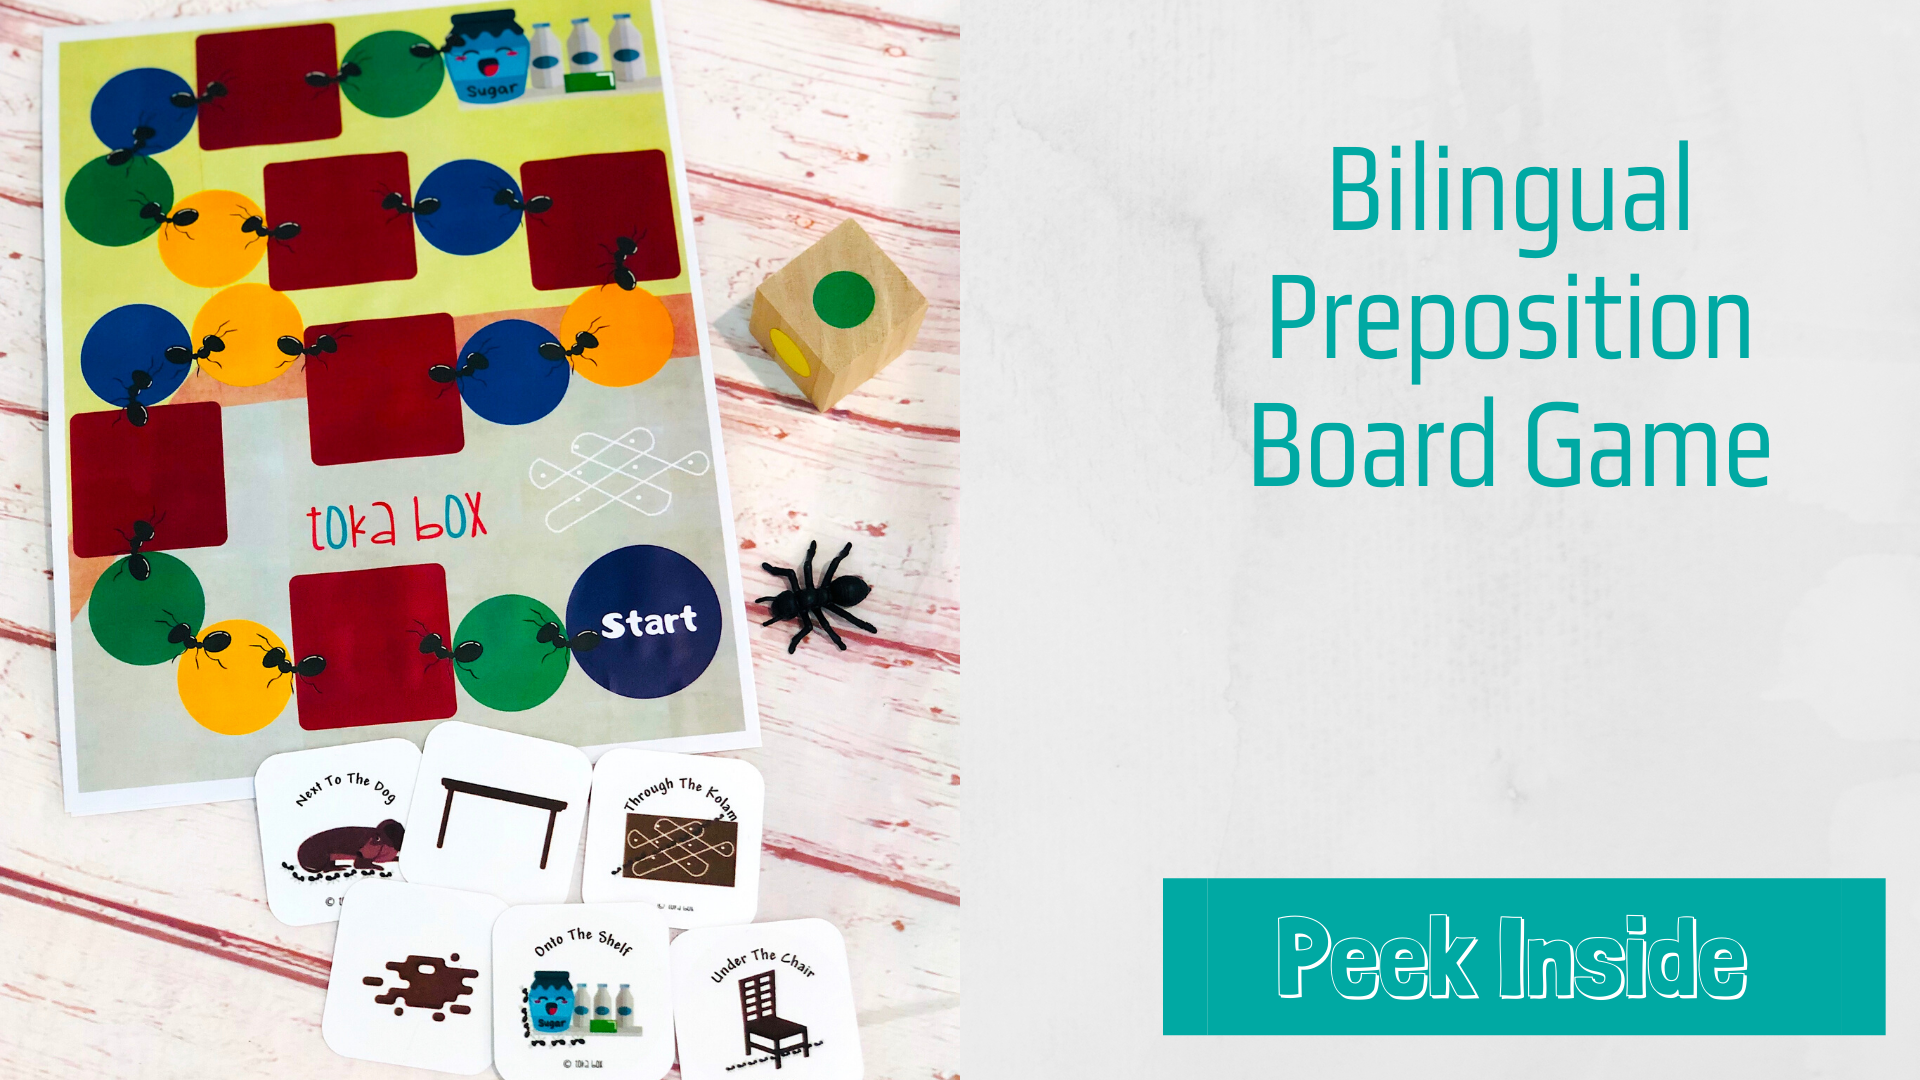 Bilingual Preposition Board Game for preschoolers